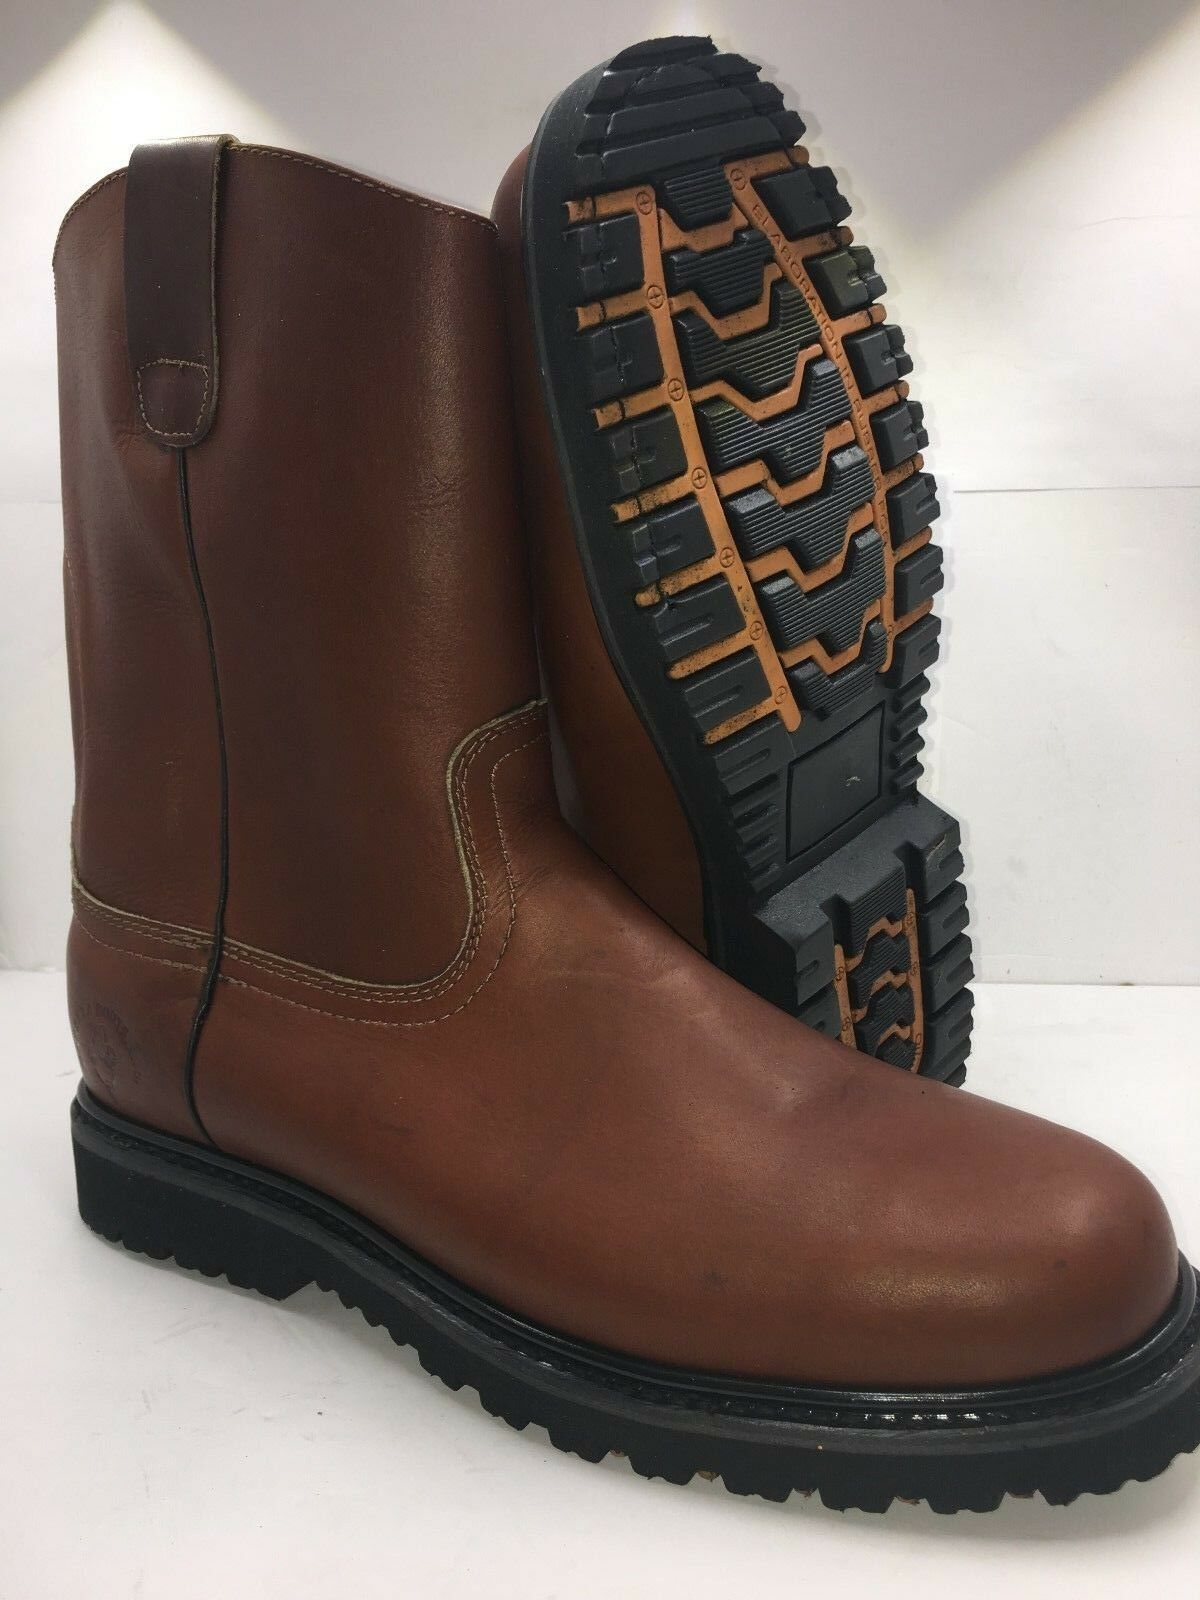 Men's Work Boots Pull On Leather Brown Bota de tubo de trabajo Cafe 100% Piel